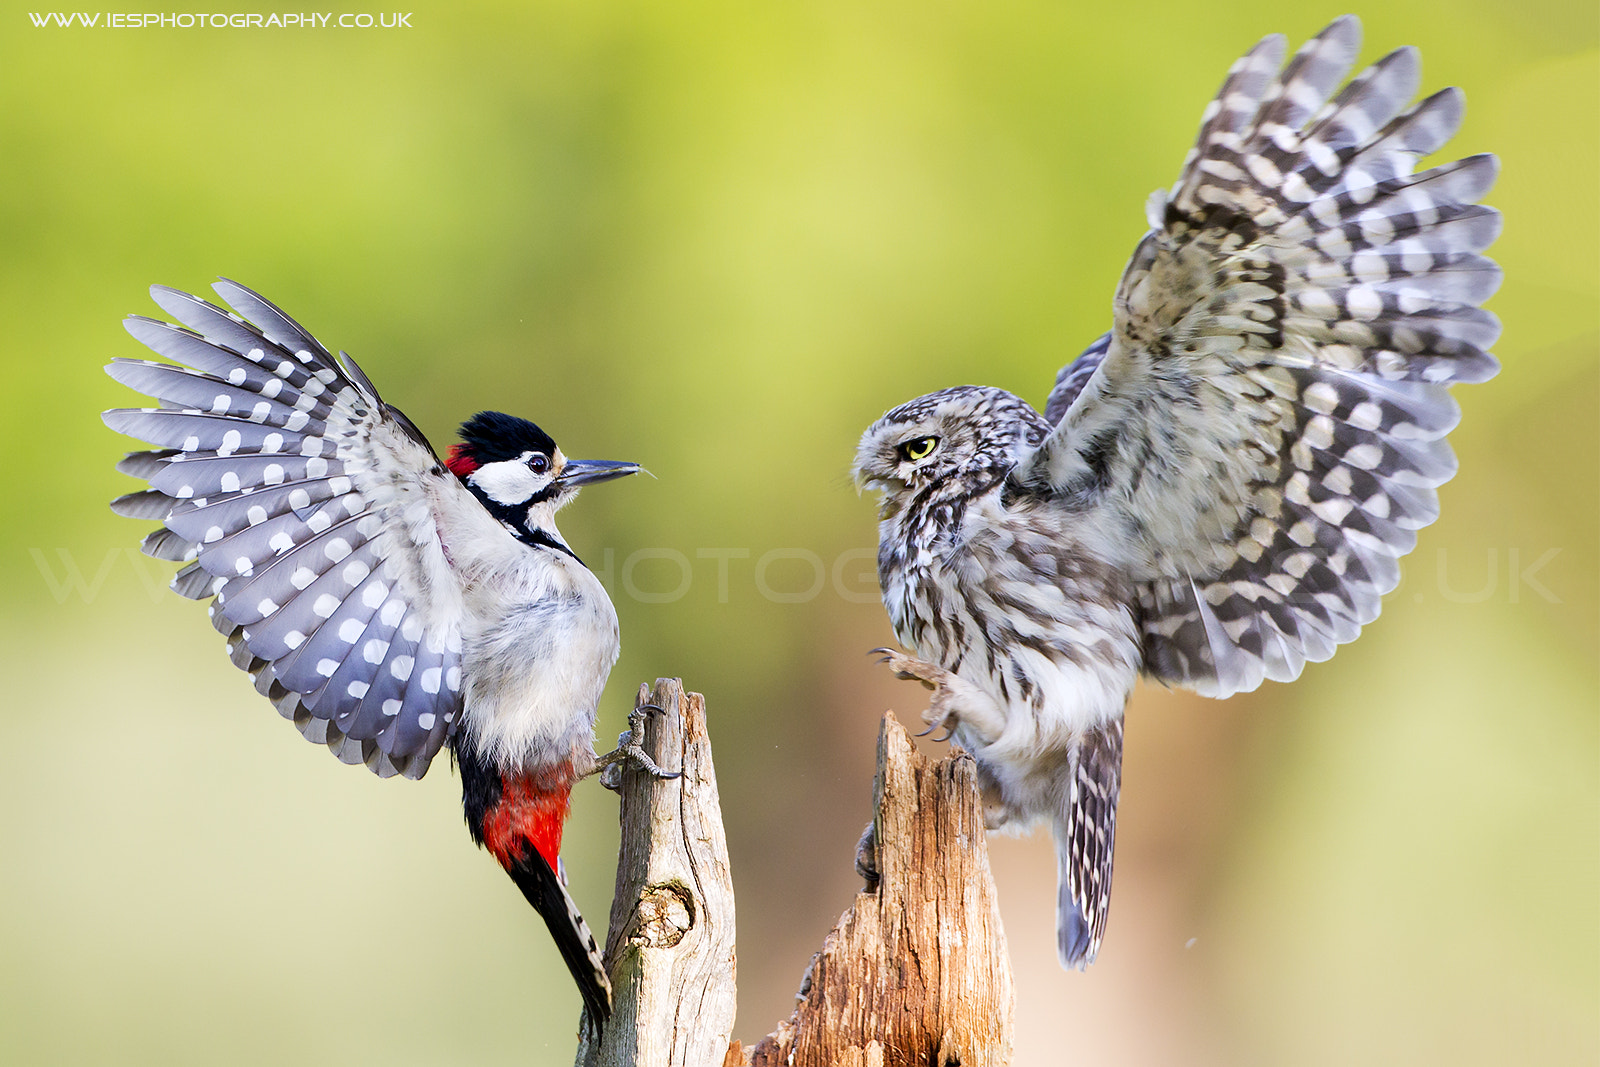 Photograph Little Owl and Great Spotted Woodpecker Fight by Ian Schofield on 500px